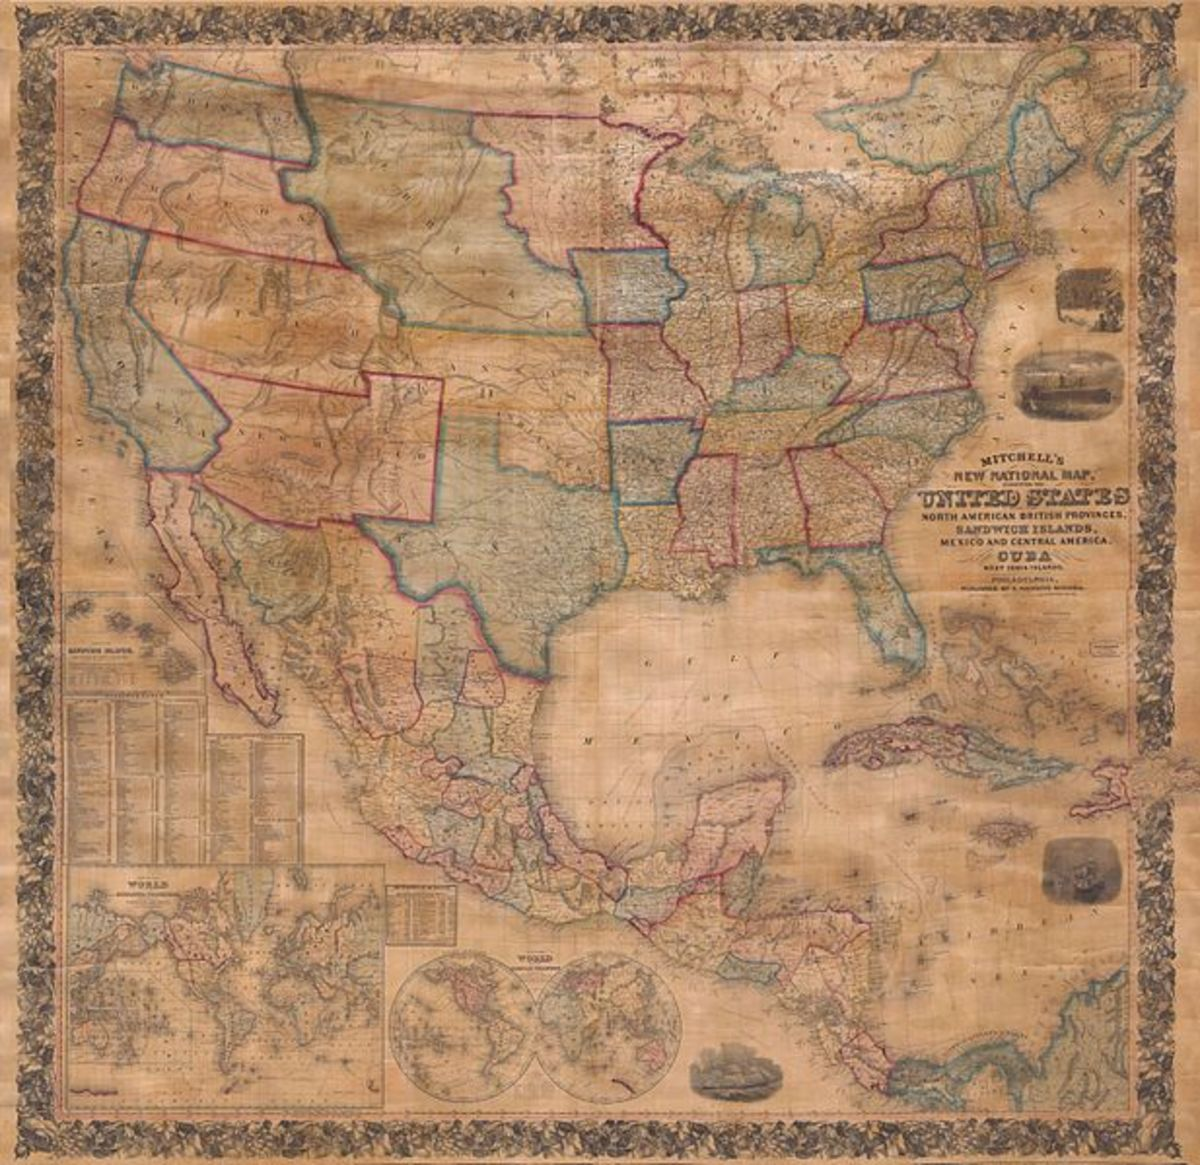 Don't just point to a map and expect students to know what they should be looking for. Consider using comparing and contrasting techniques with old and modern maps.